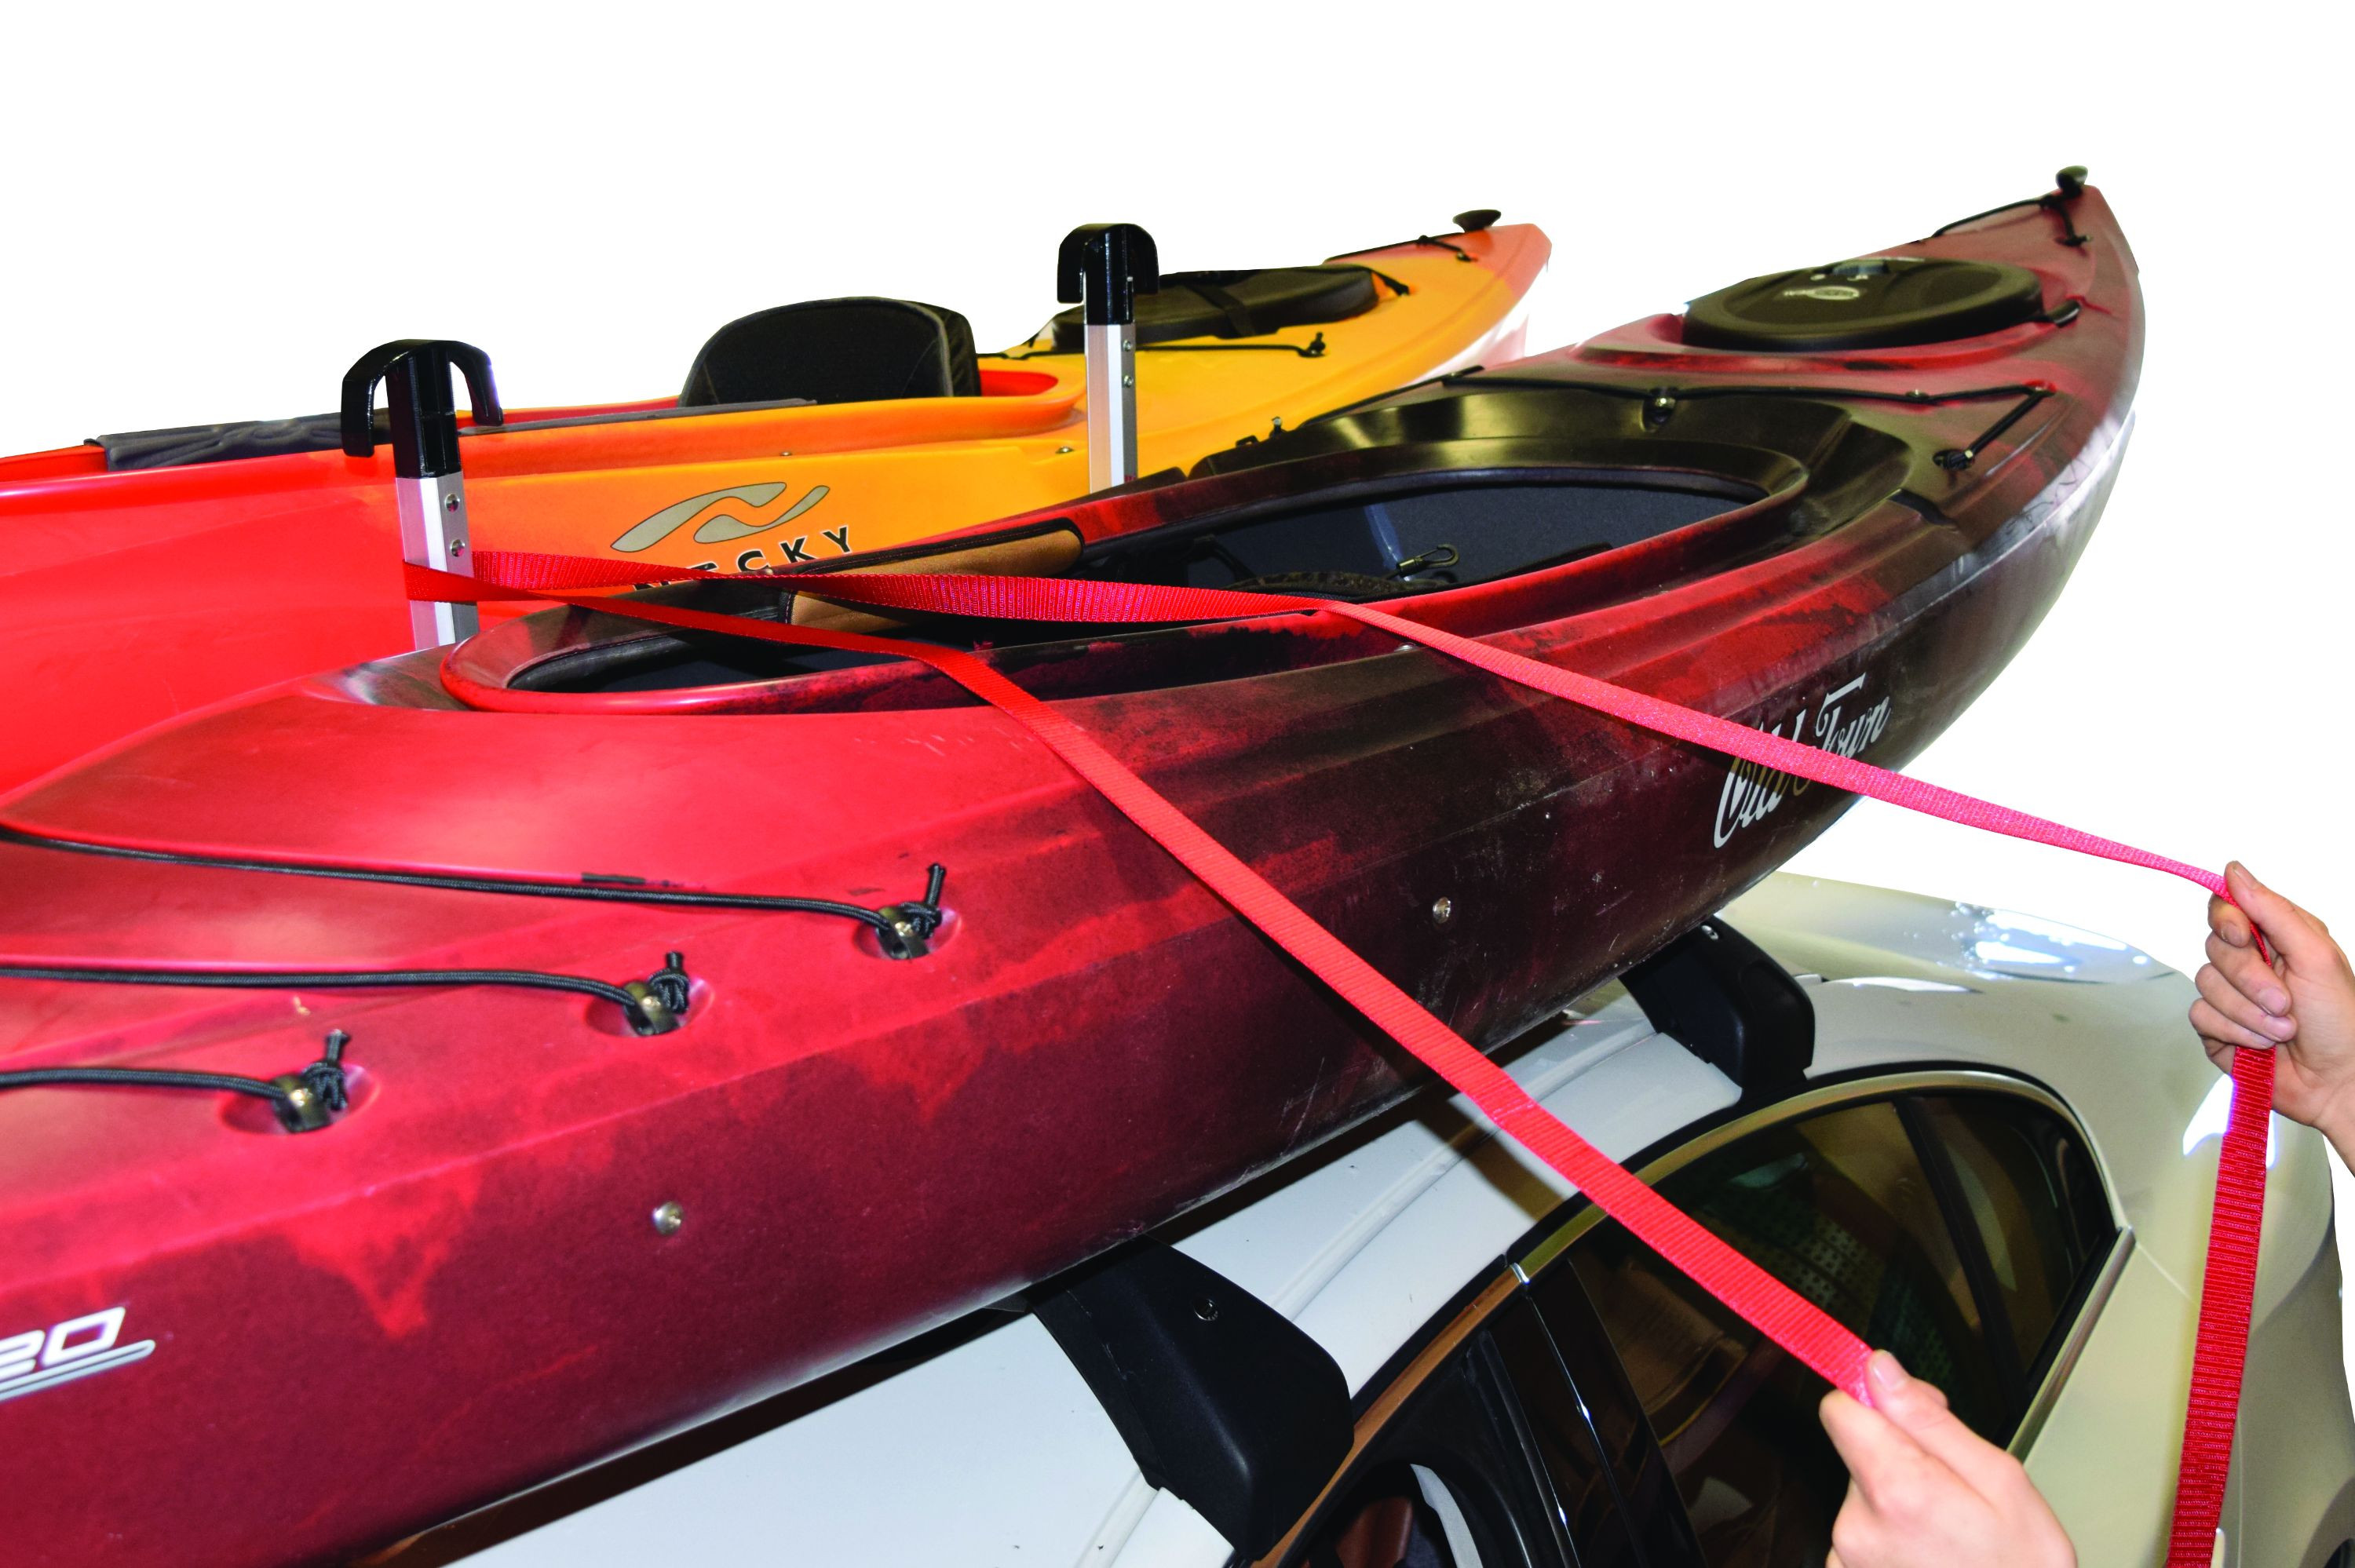 Stax Pro™ 2 (2 boat carrier)